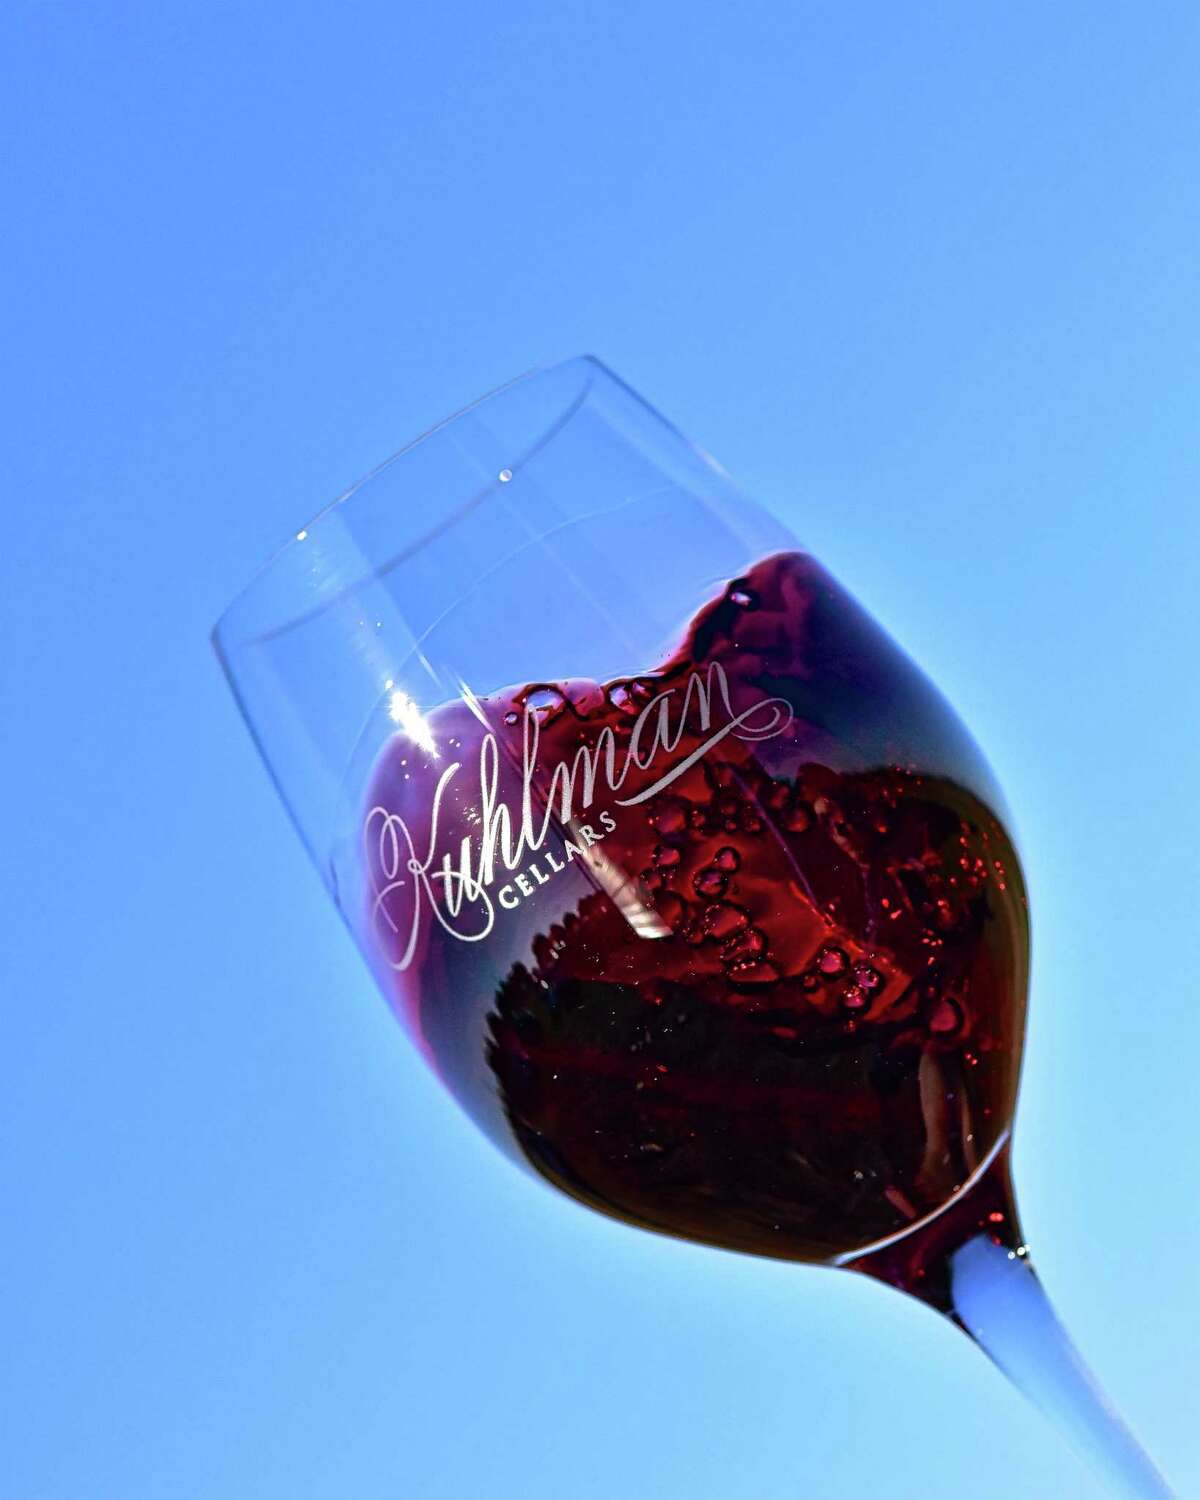 Red wine from Kuhlman Cellars